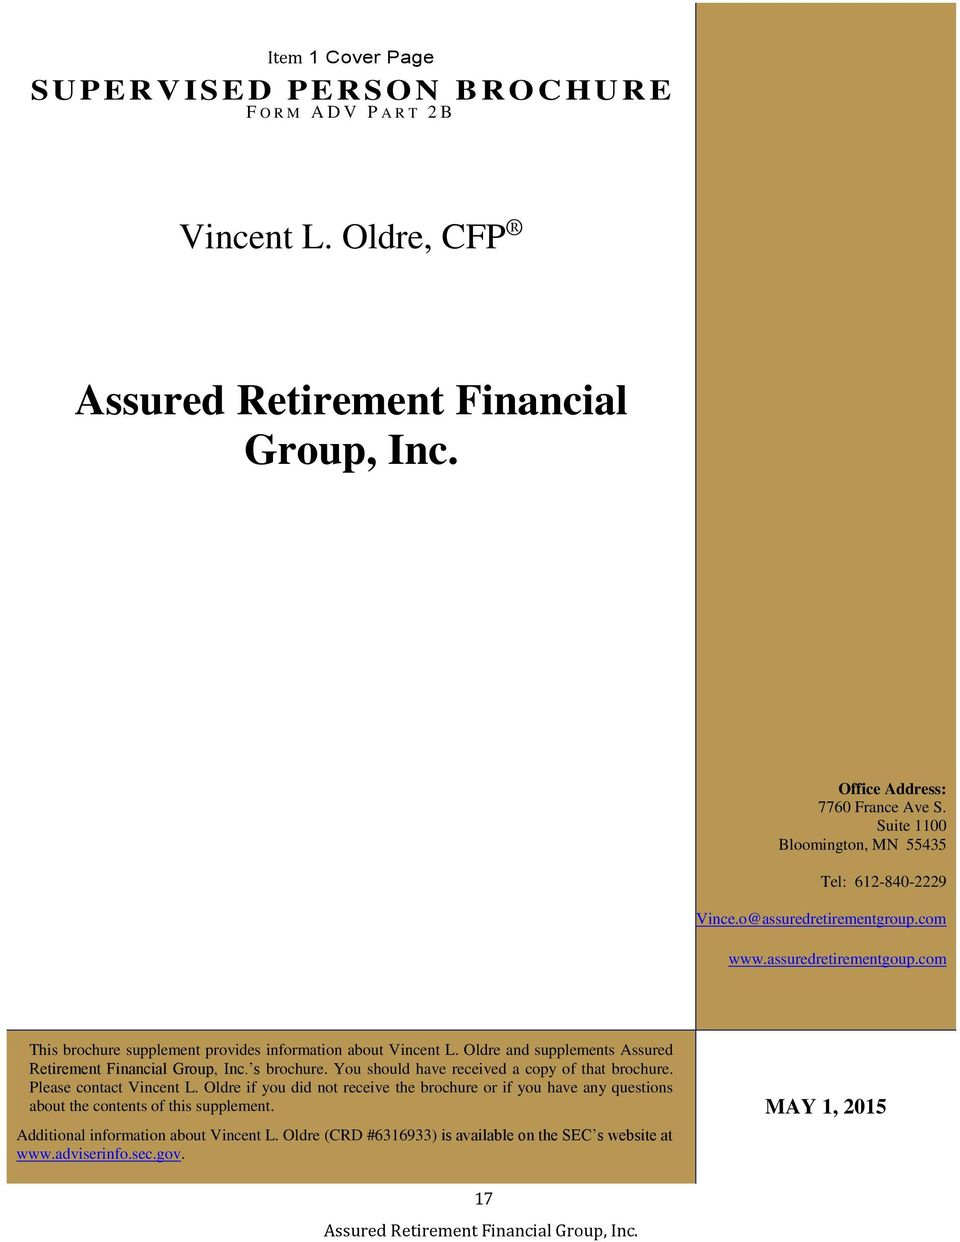 Oldre and supplements Assured Retirement Financial Group, Inc. s brochure. You should have received a copy of that brochure. Please contact Vincent L.